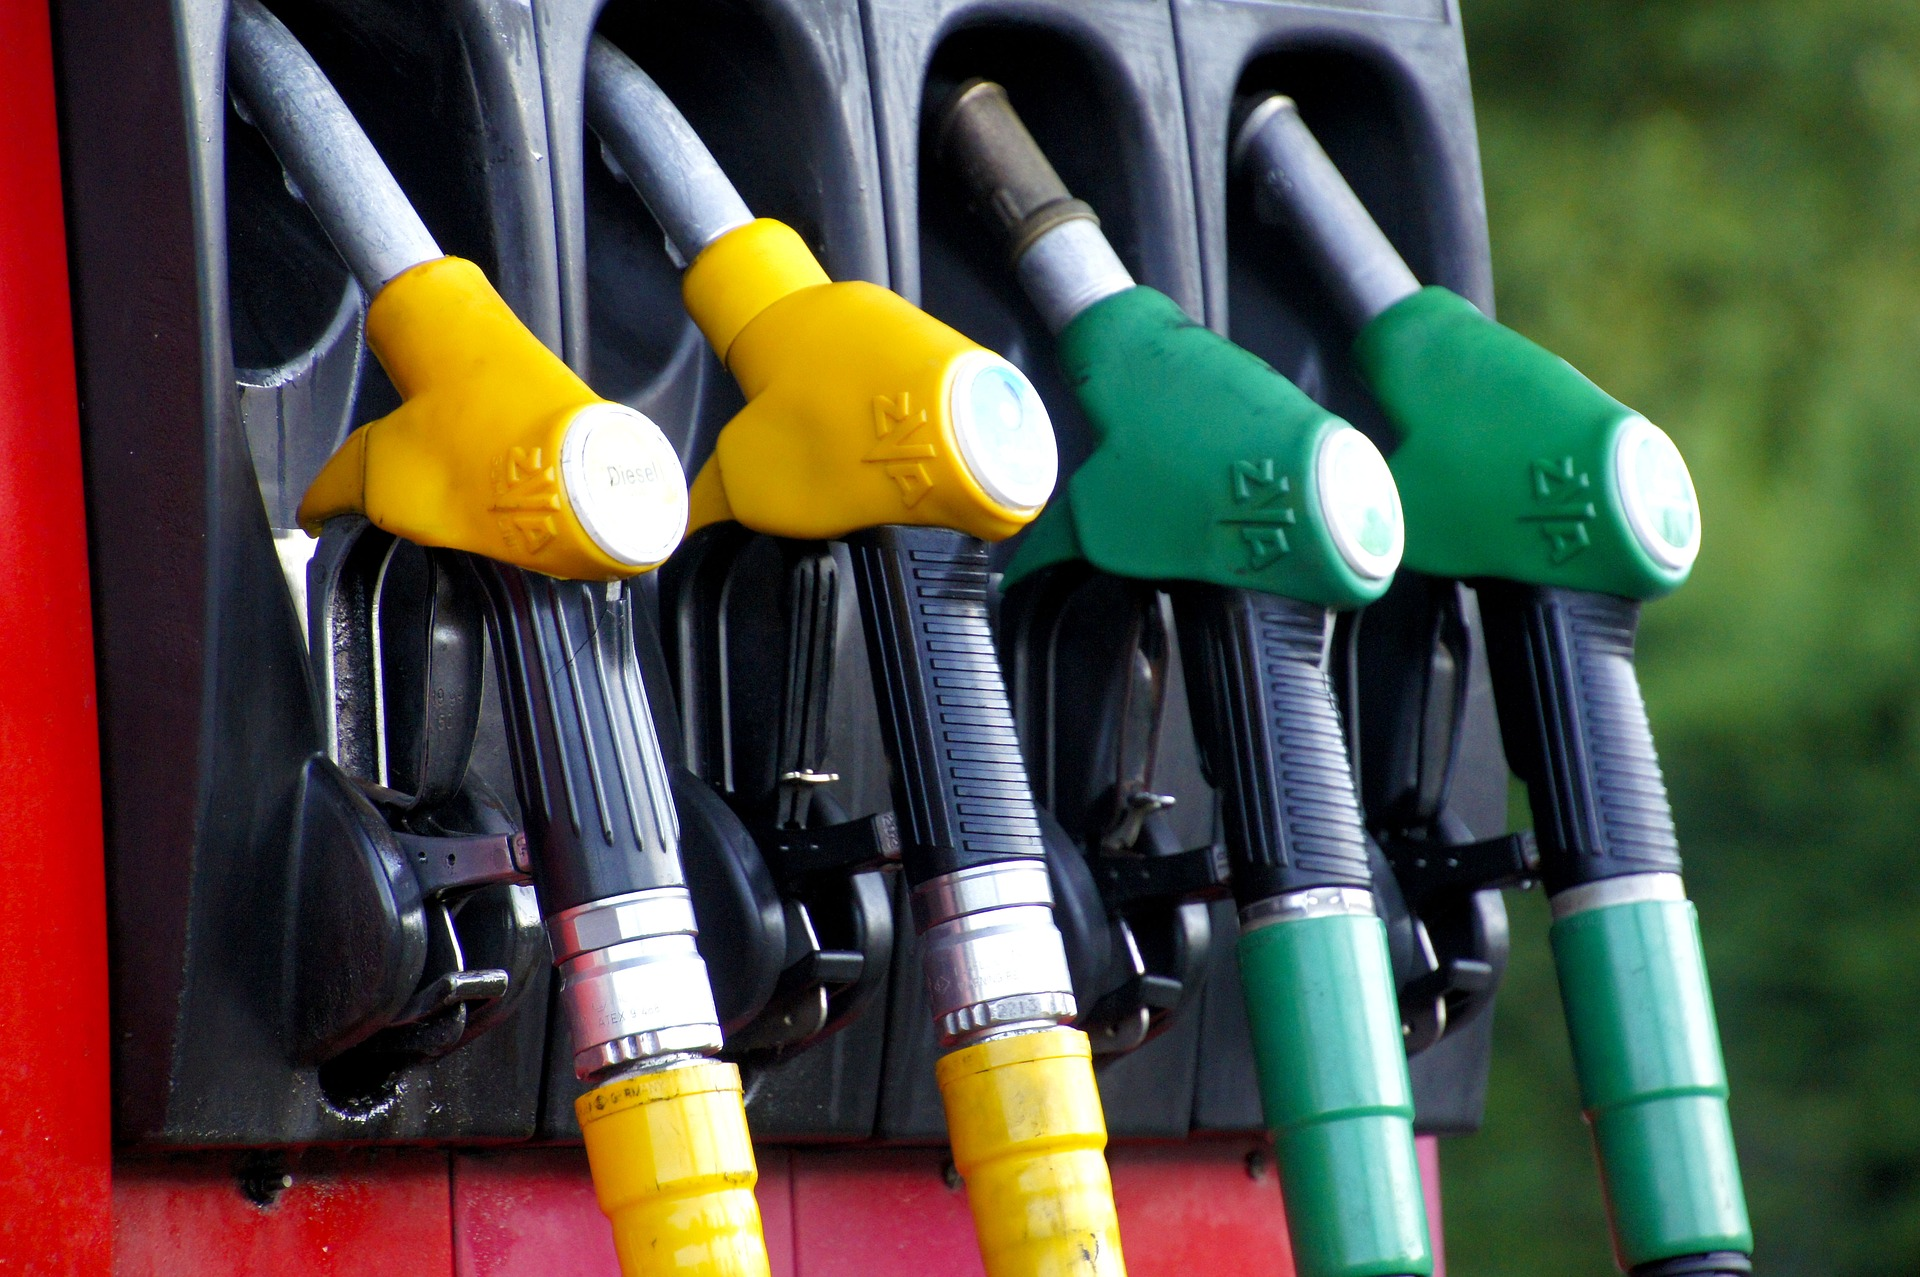 Slight drop in gas prices expected in Nova Scotia - HalifaxToday.ca